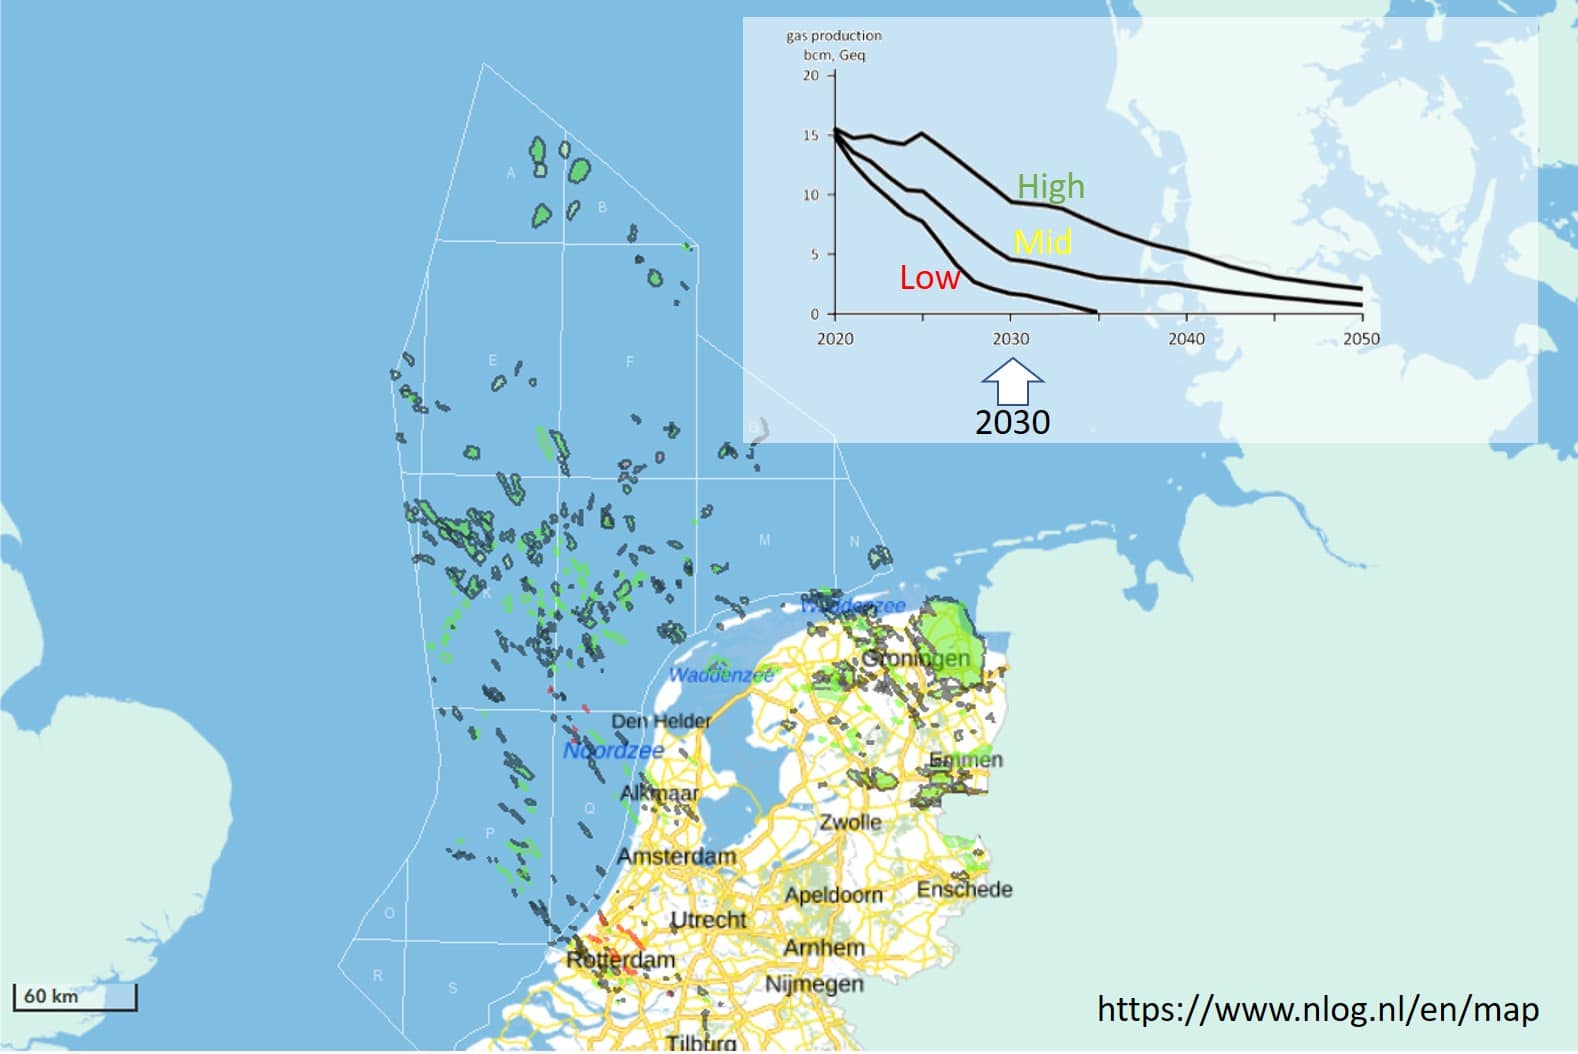 Dire forecast for Dutch gas production